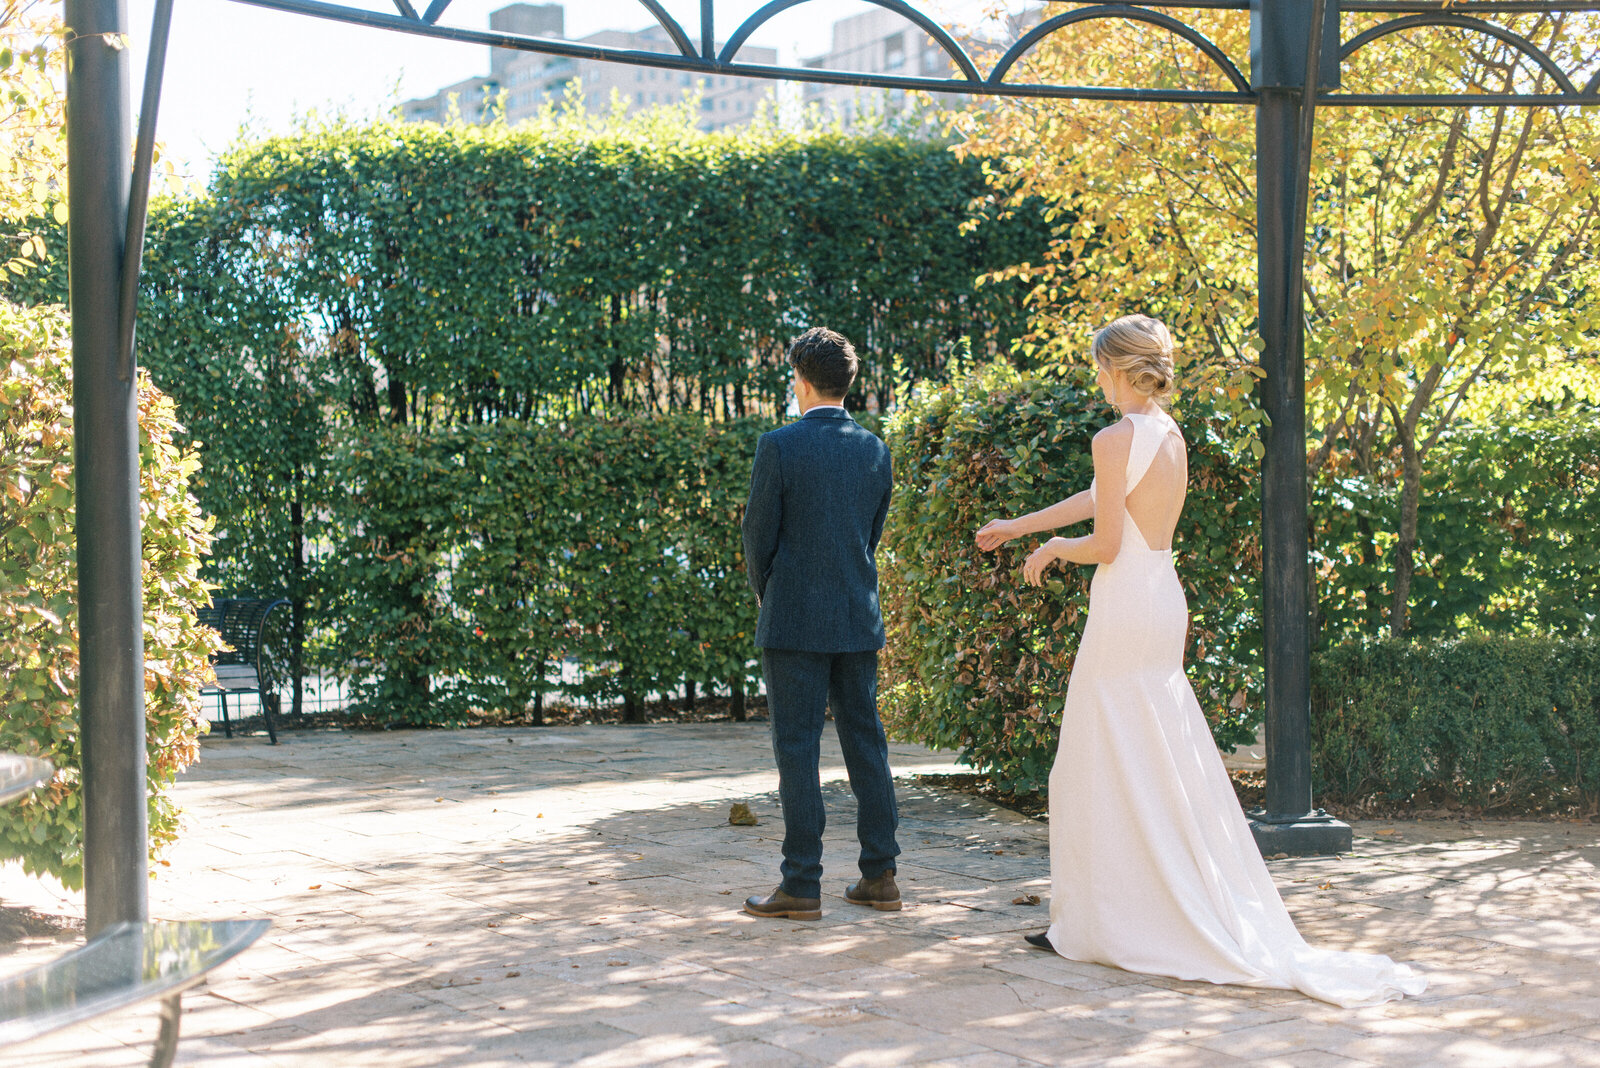 Hannah & Andrew _ First Looks & Ceremony _ by Steph Masat -19